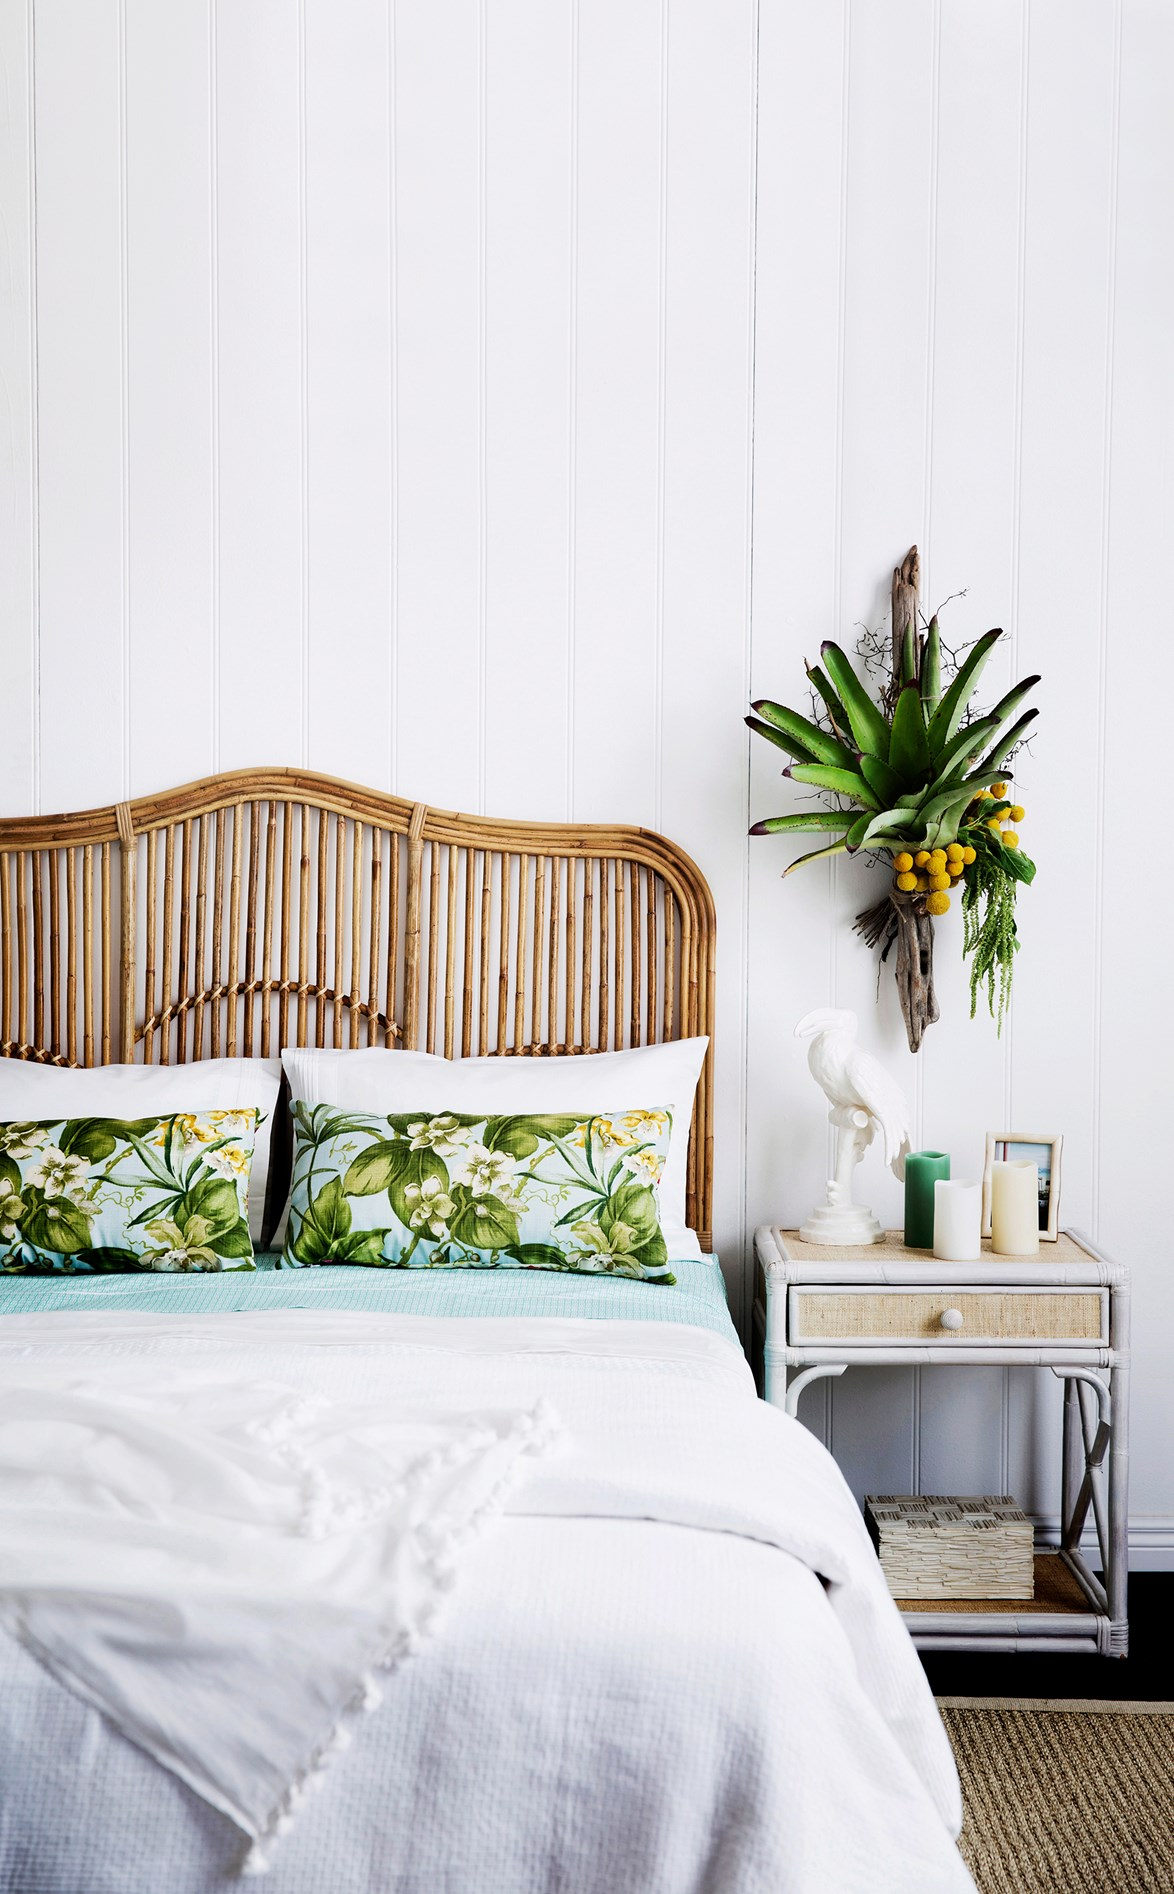 A cane or rattan bedhead can transform even the simplest bedroom into an inviting summer retreat.